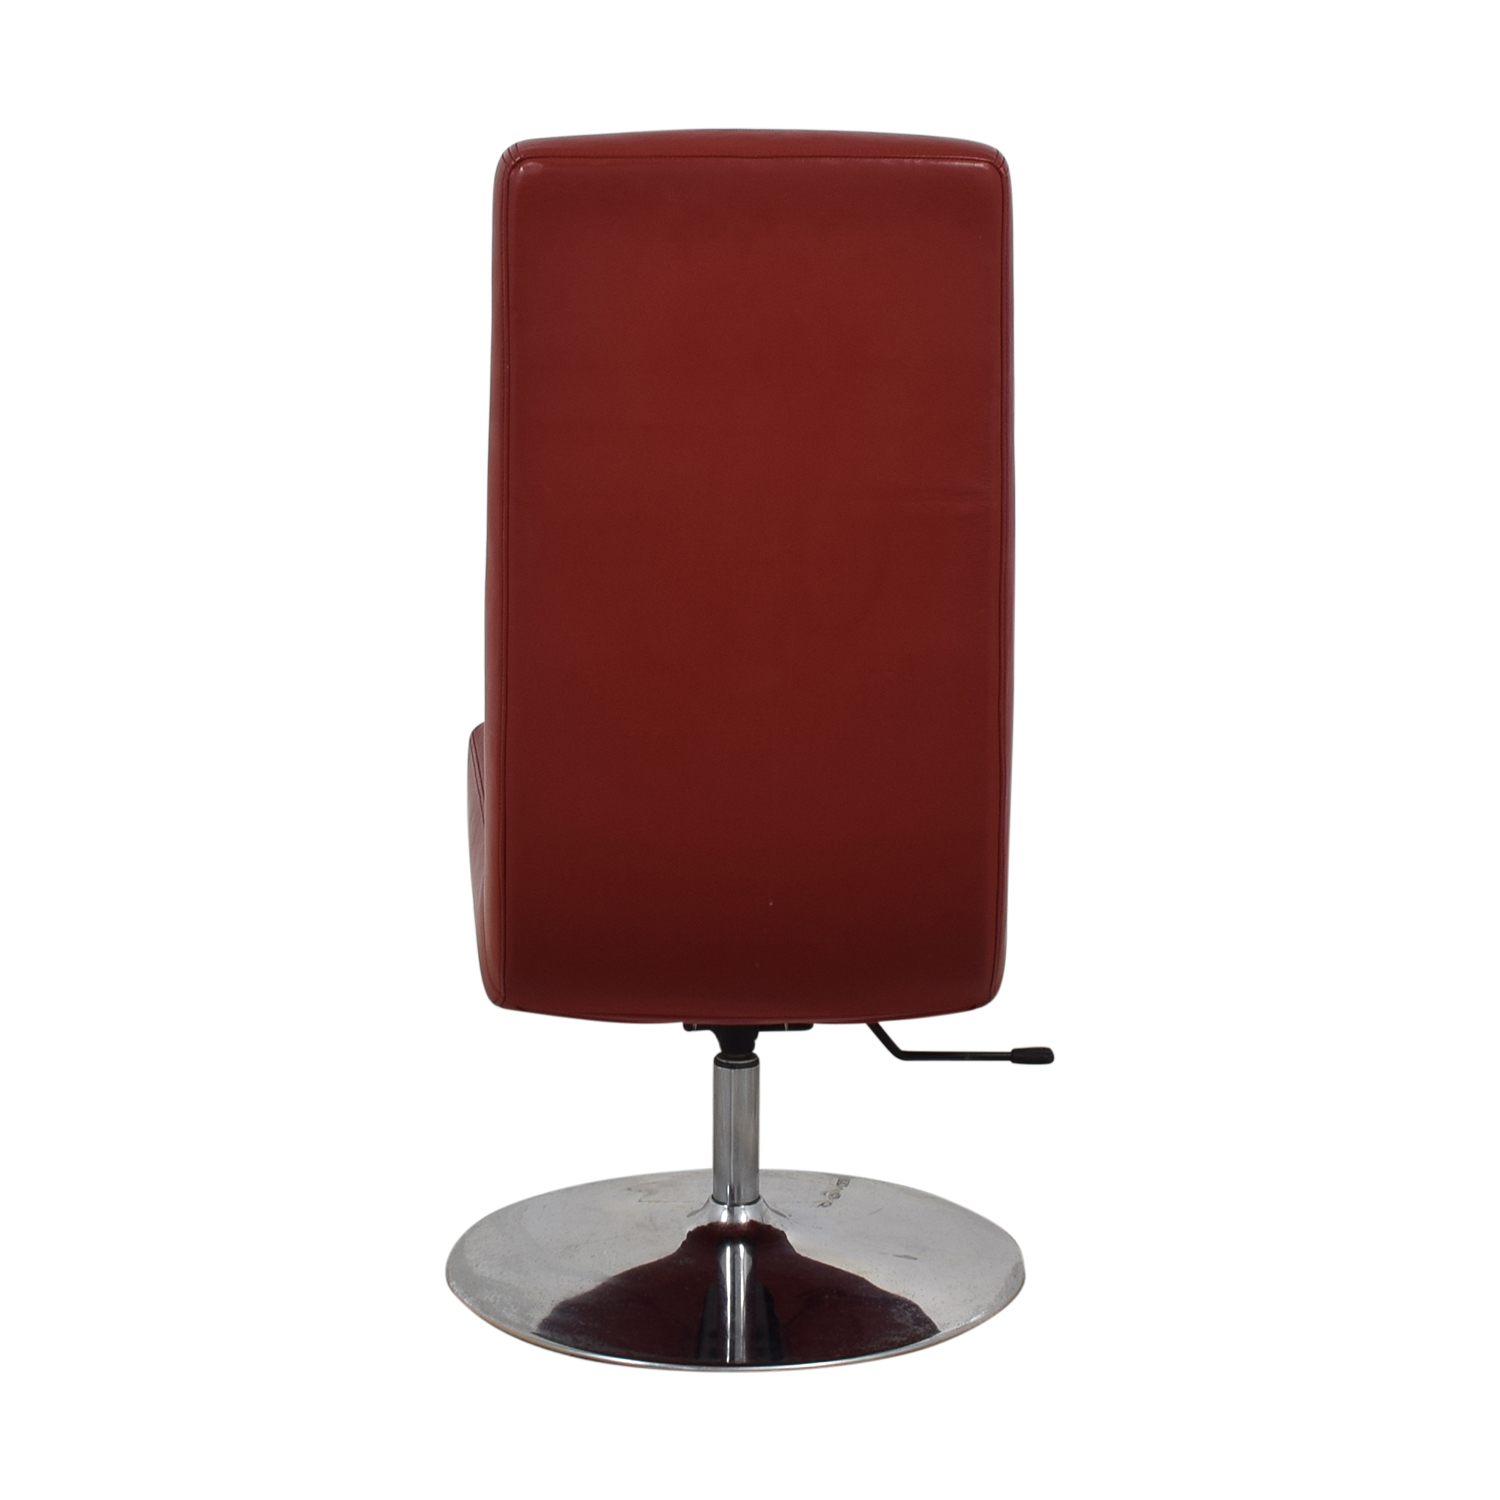 BoConcept Aero Style Red Office Swivel Chair / Chairs